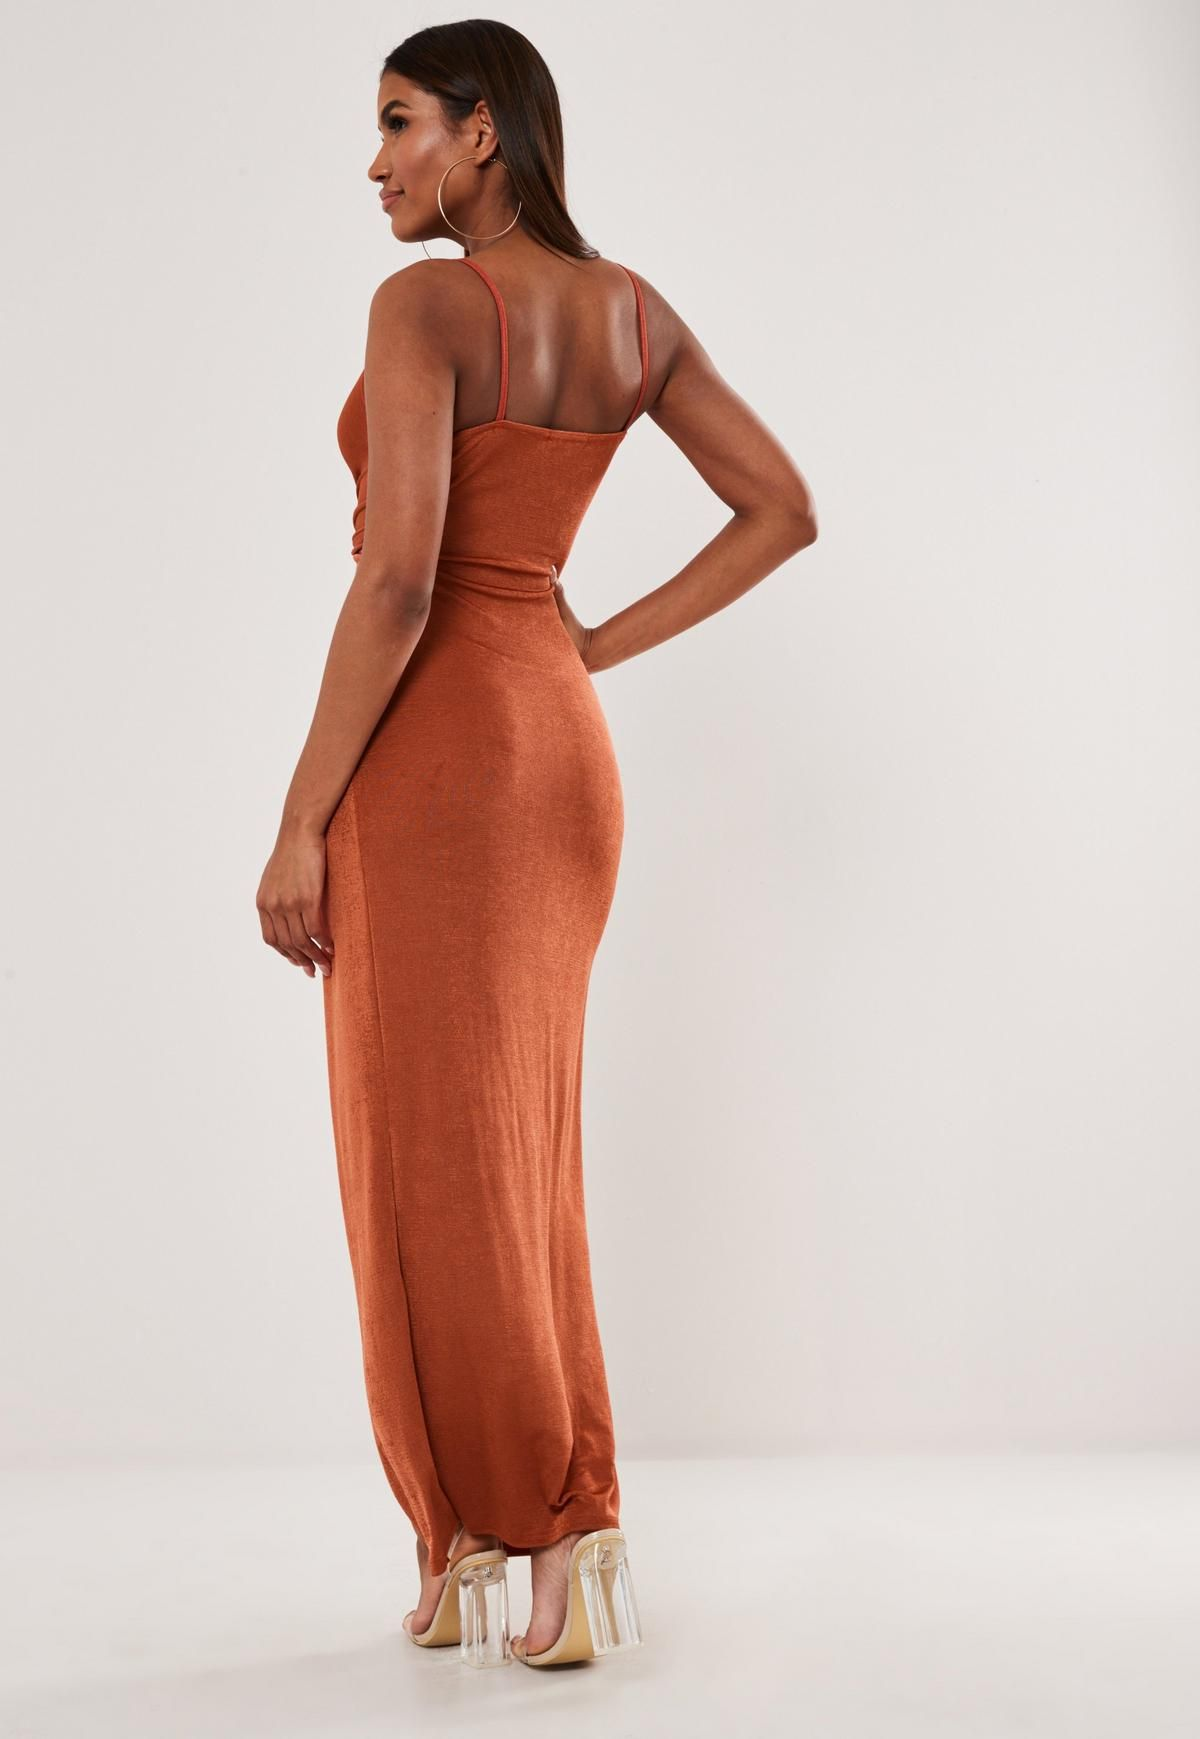 Rust Slinky Strappy Knot Maxi Dress Missguided Knot Maxi Dress Trending Dresses Dresses [ 1739 x 1200 Pixel ]